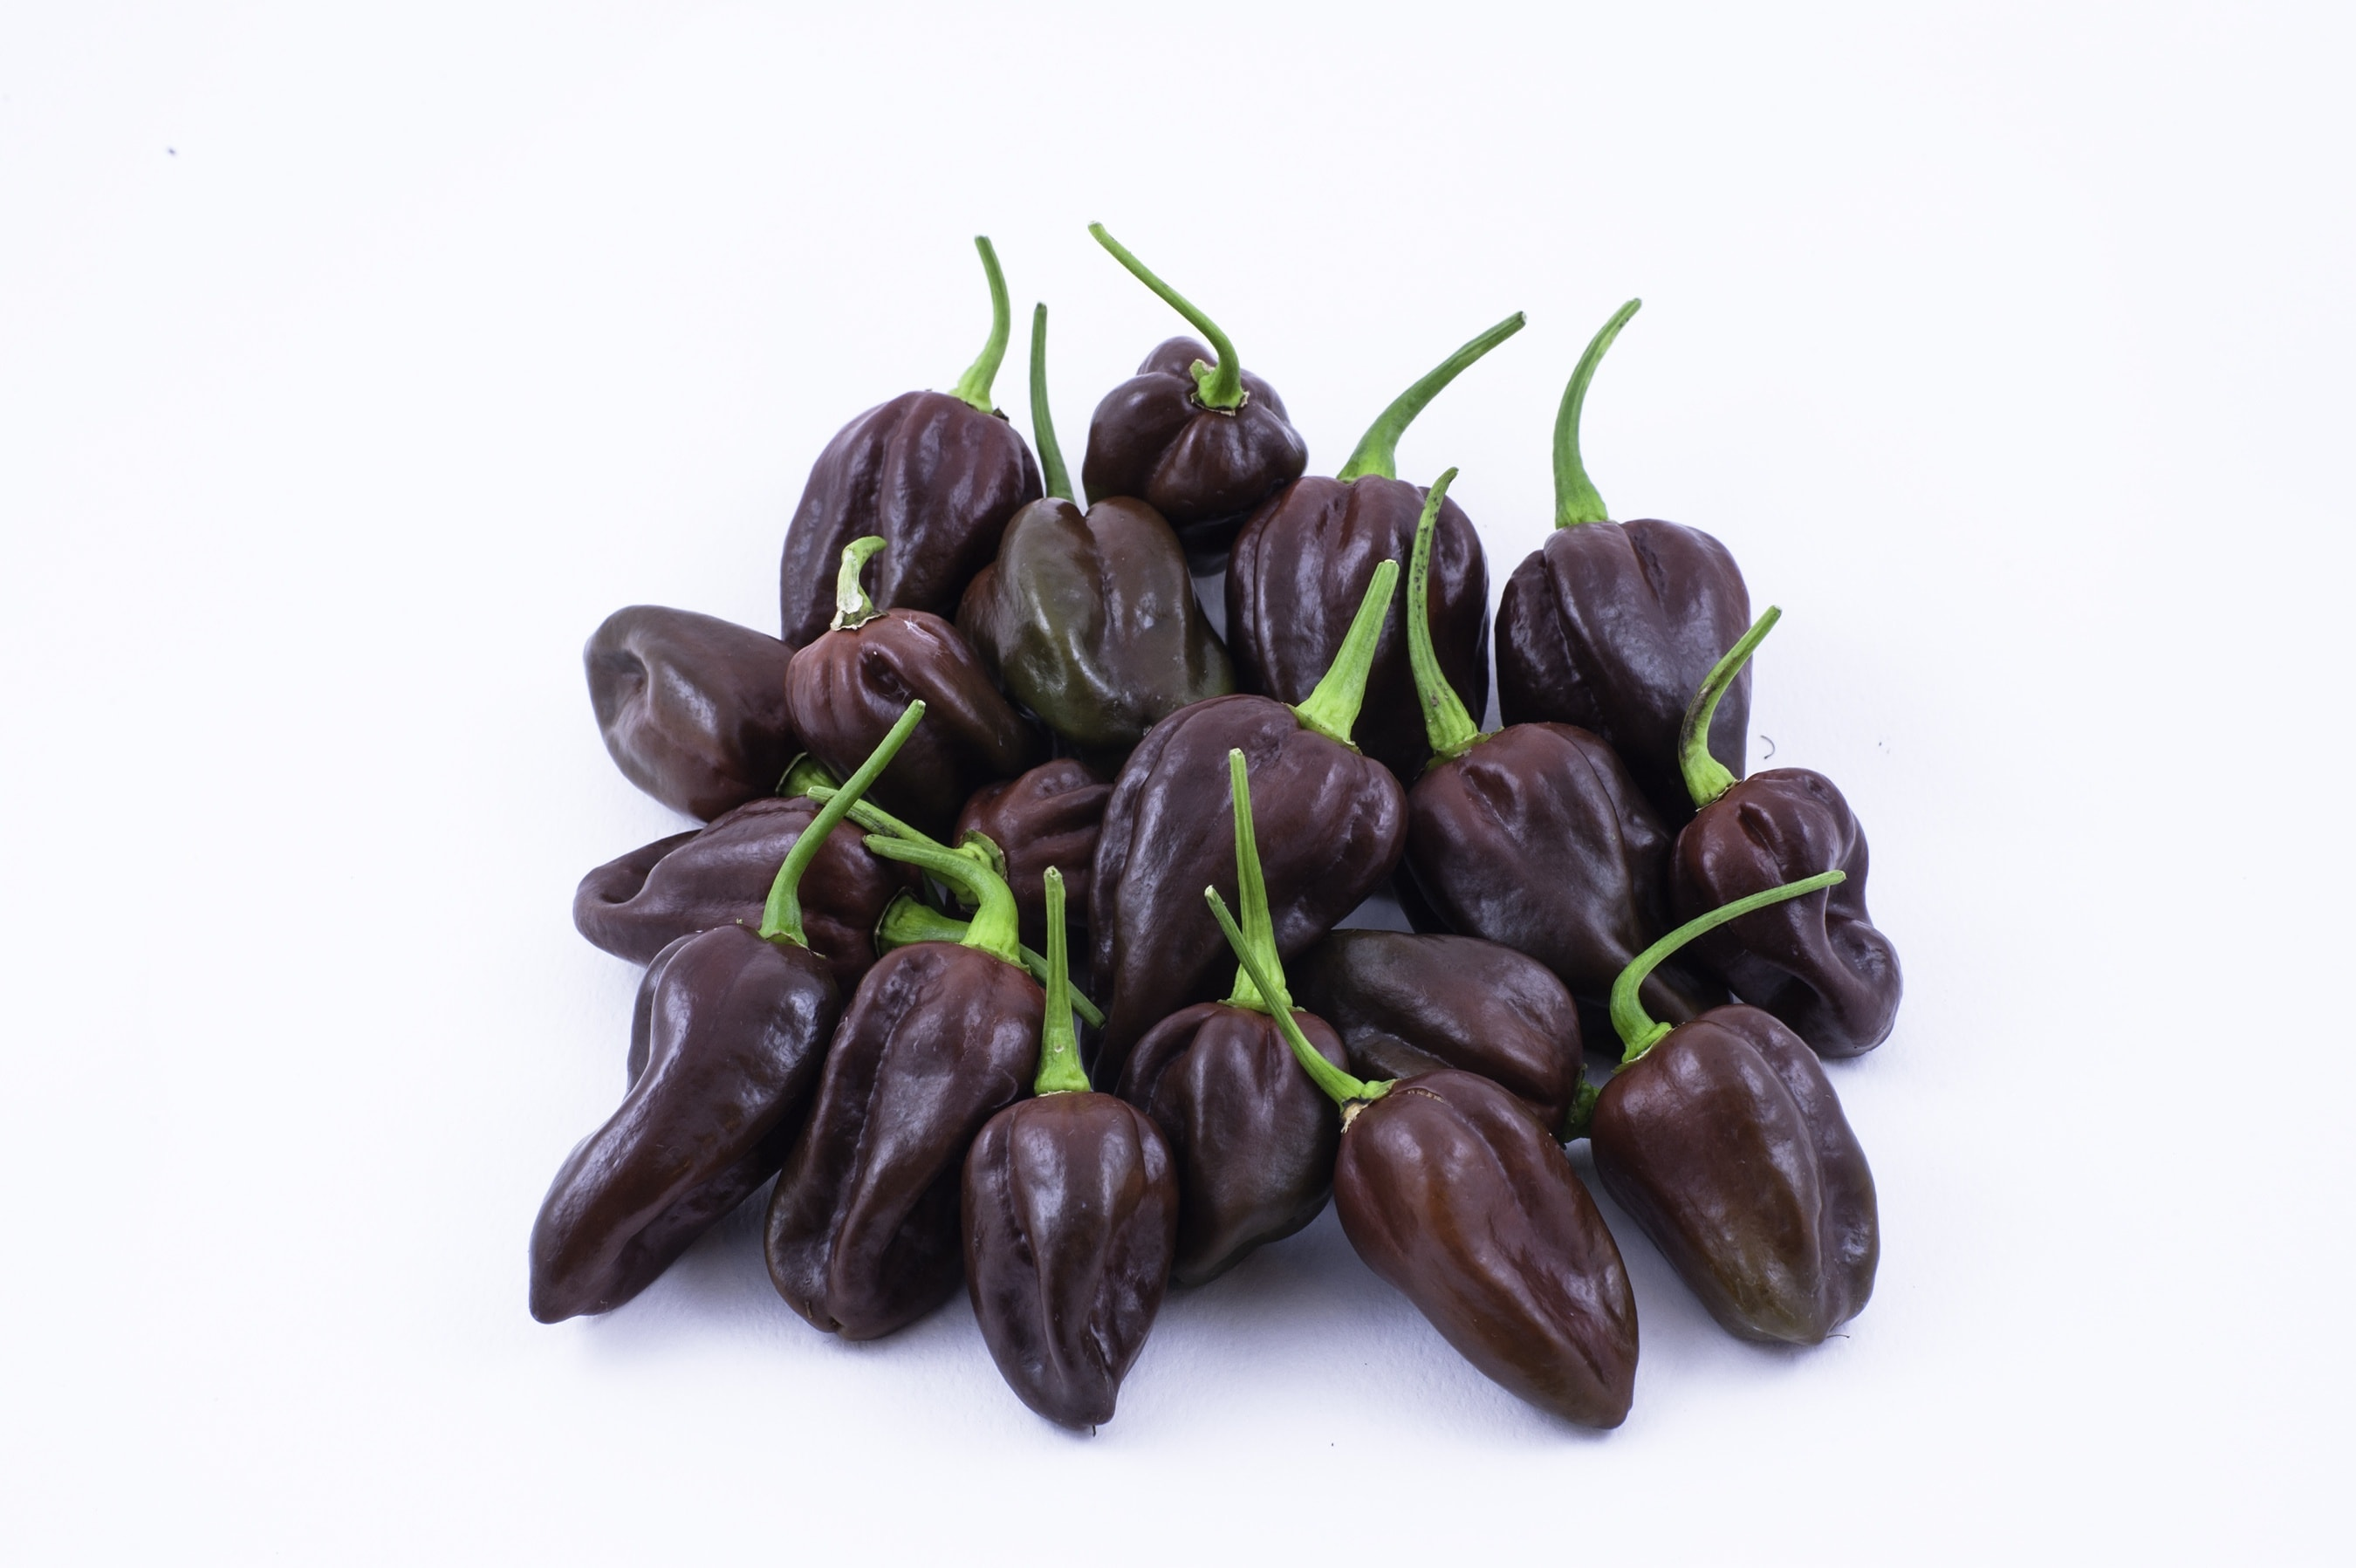 chocolate habanero peppers